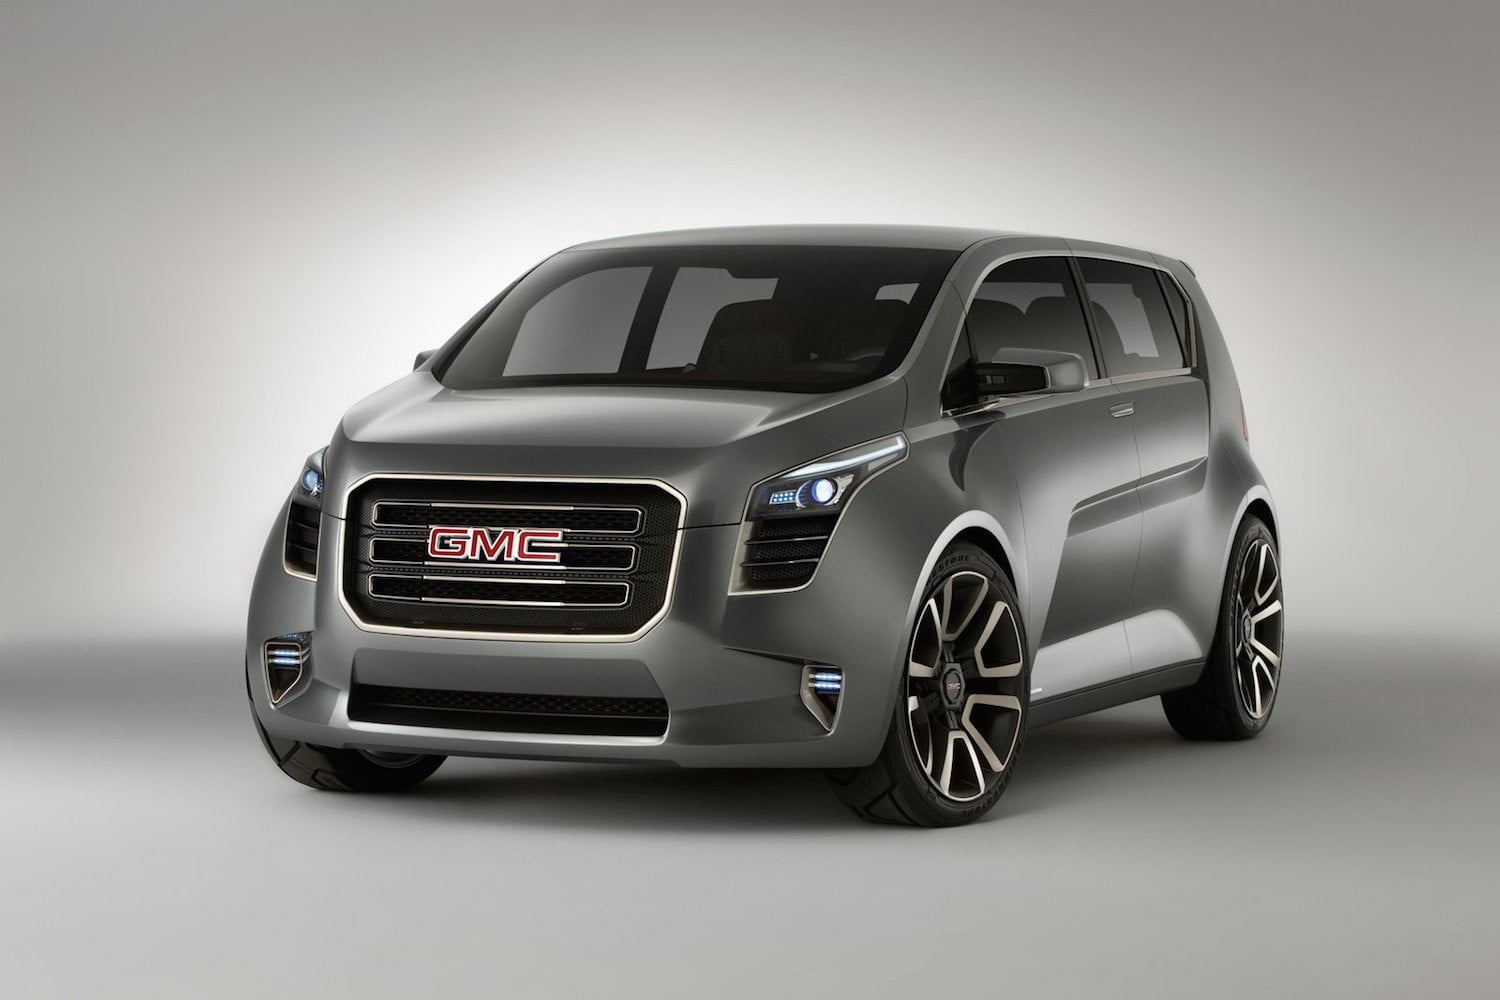 times premium with more design gmc terrain offers compact bavarian new value suv features starts small at